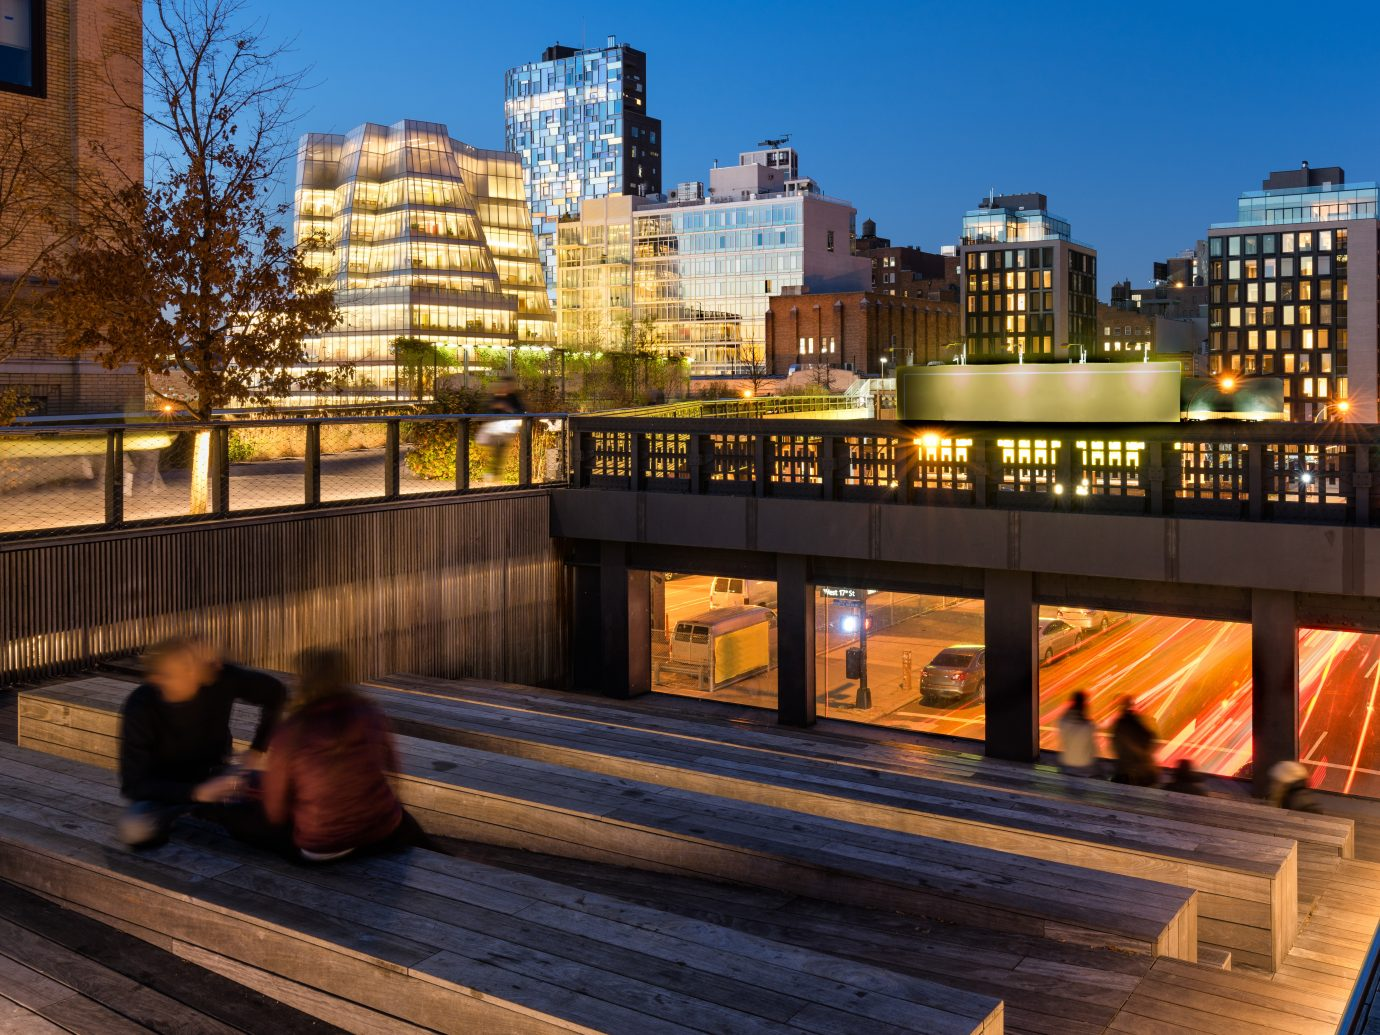 CROP of The High Line at twilight with a view on 10th Avenue with skyscrapers and building illumination. Chelsea, Manhattan, new York City, USA